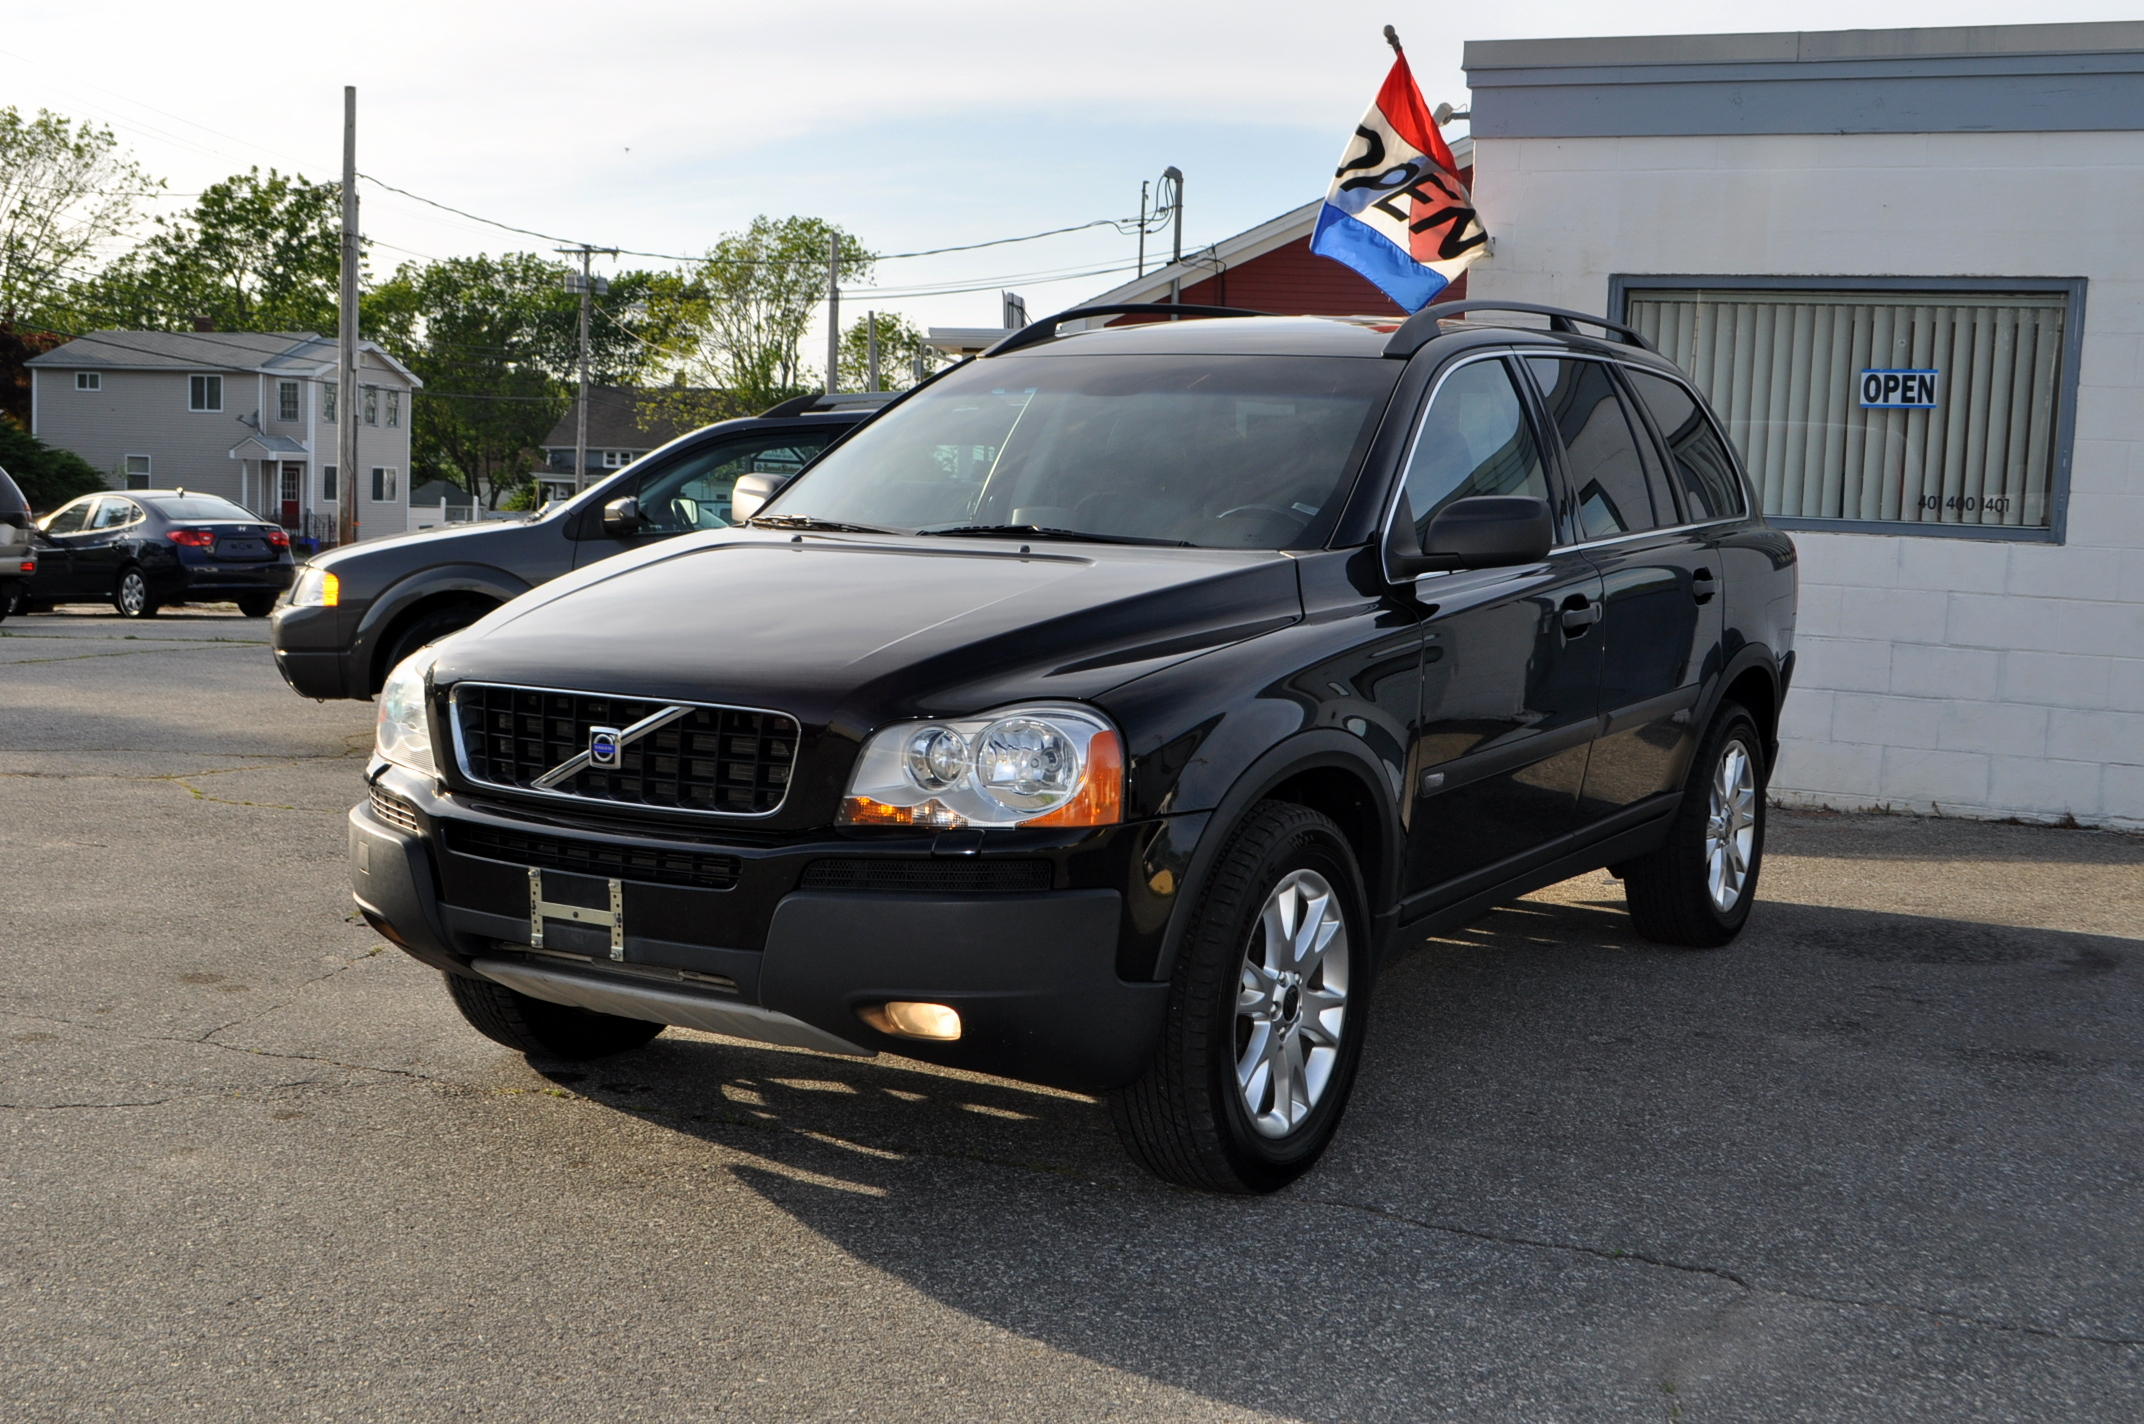 en salvage online cert auto view on copart atlanta west volvo left of auctions ga silver title for sale lot carfinder in